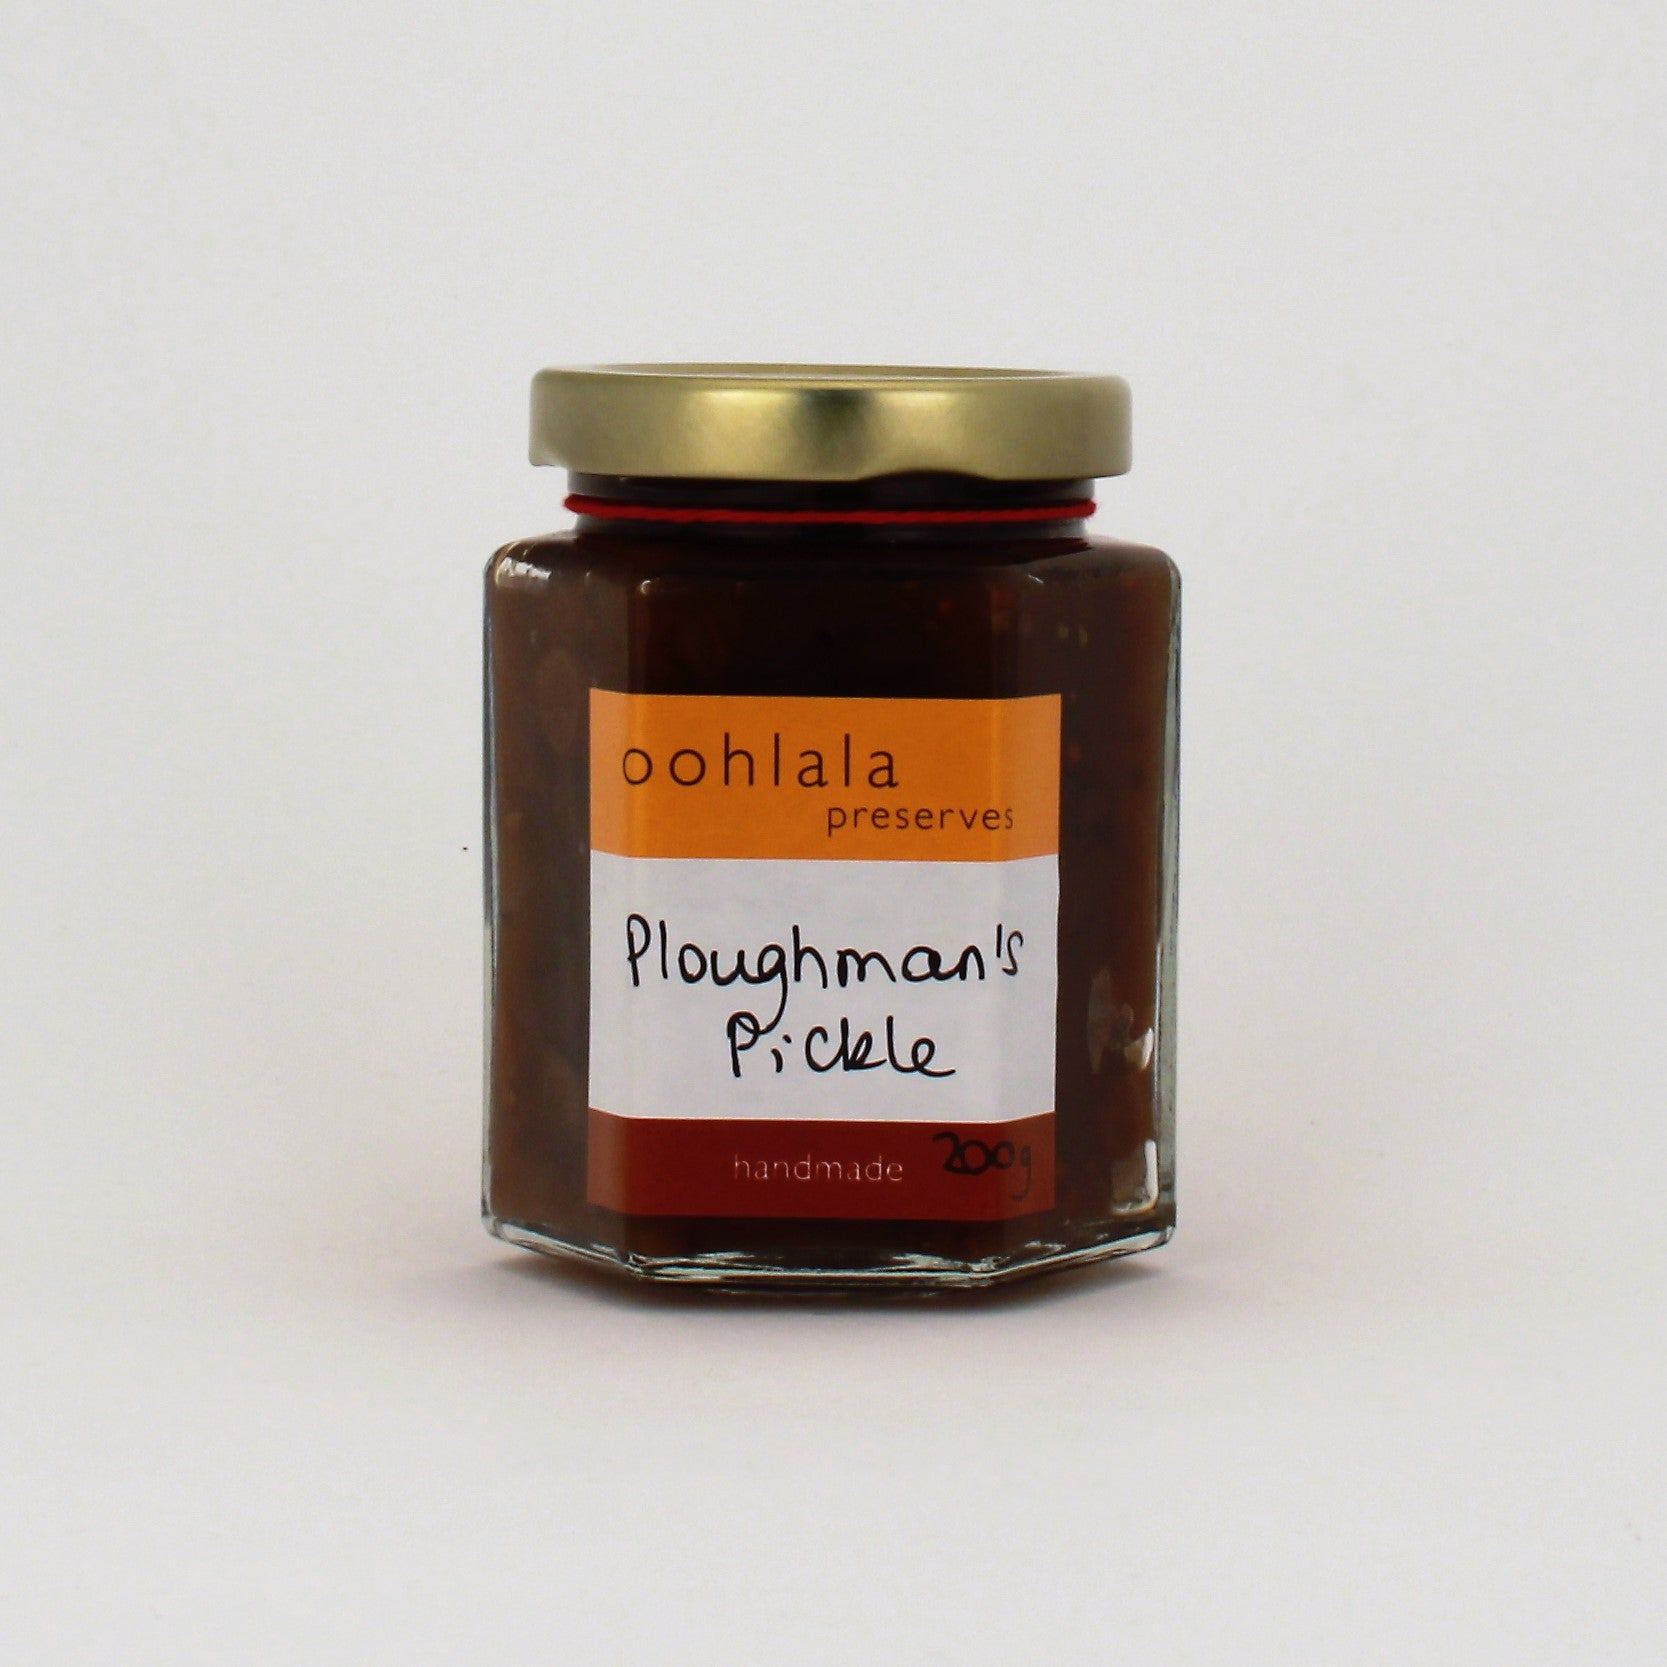 Oohlala Ploughmans Pickle 200g